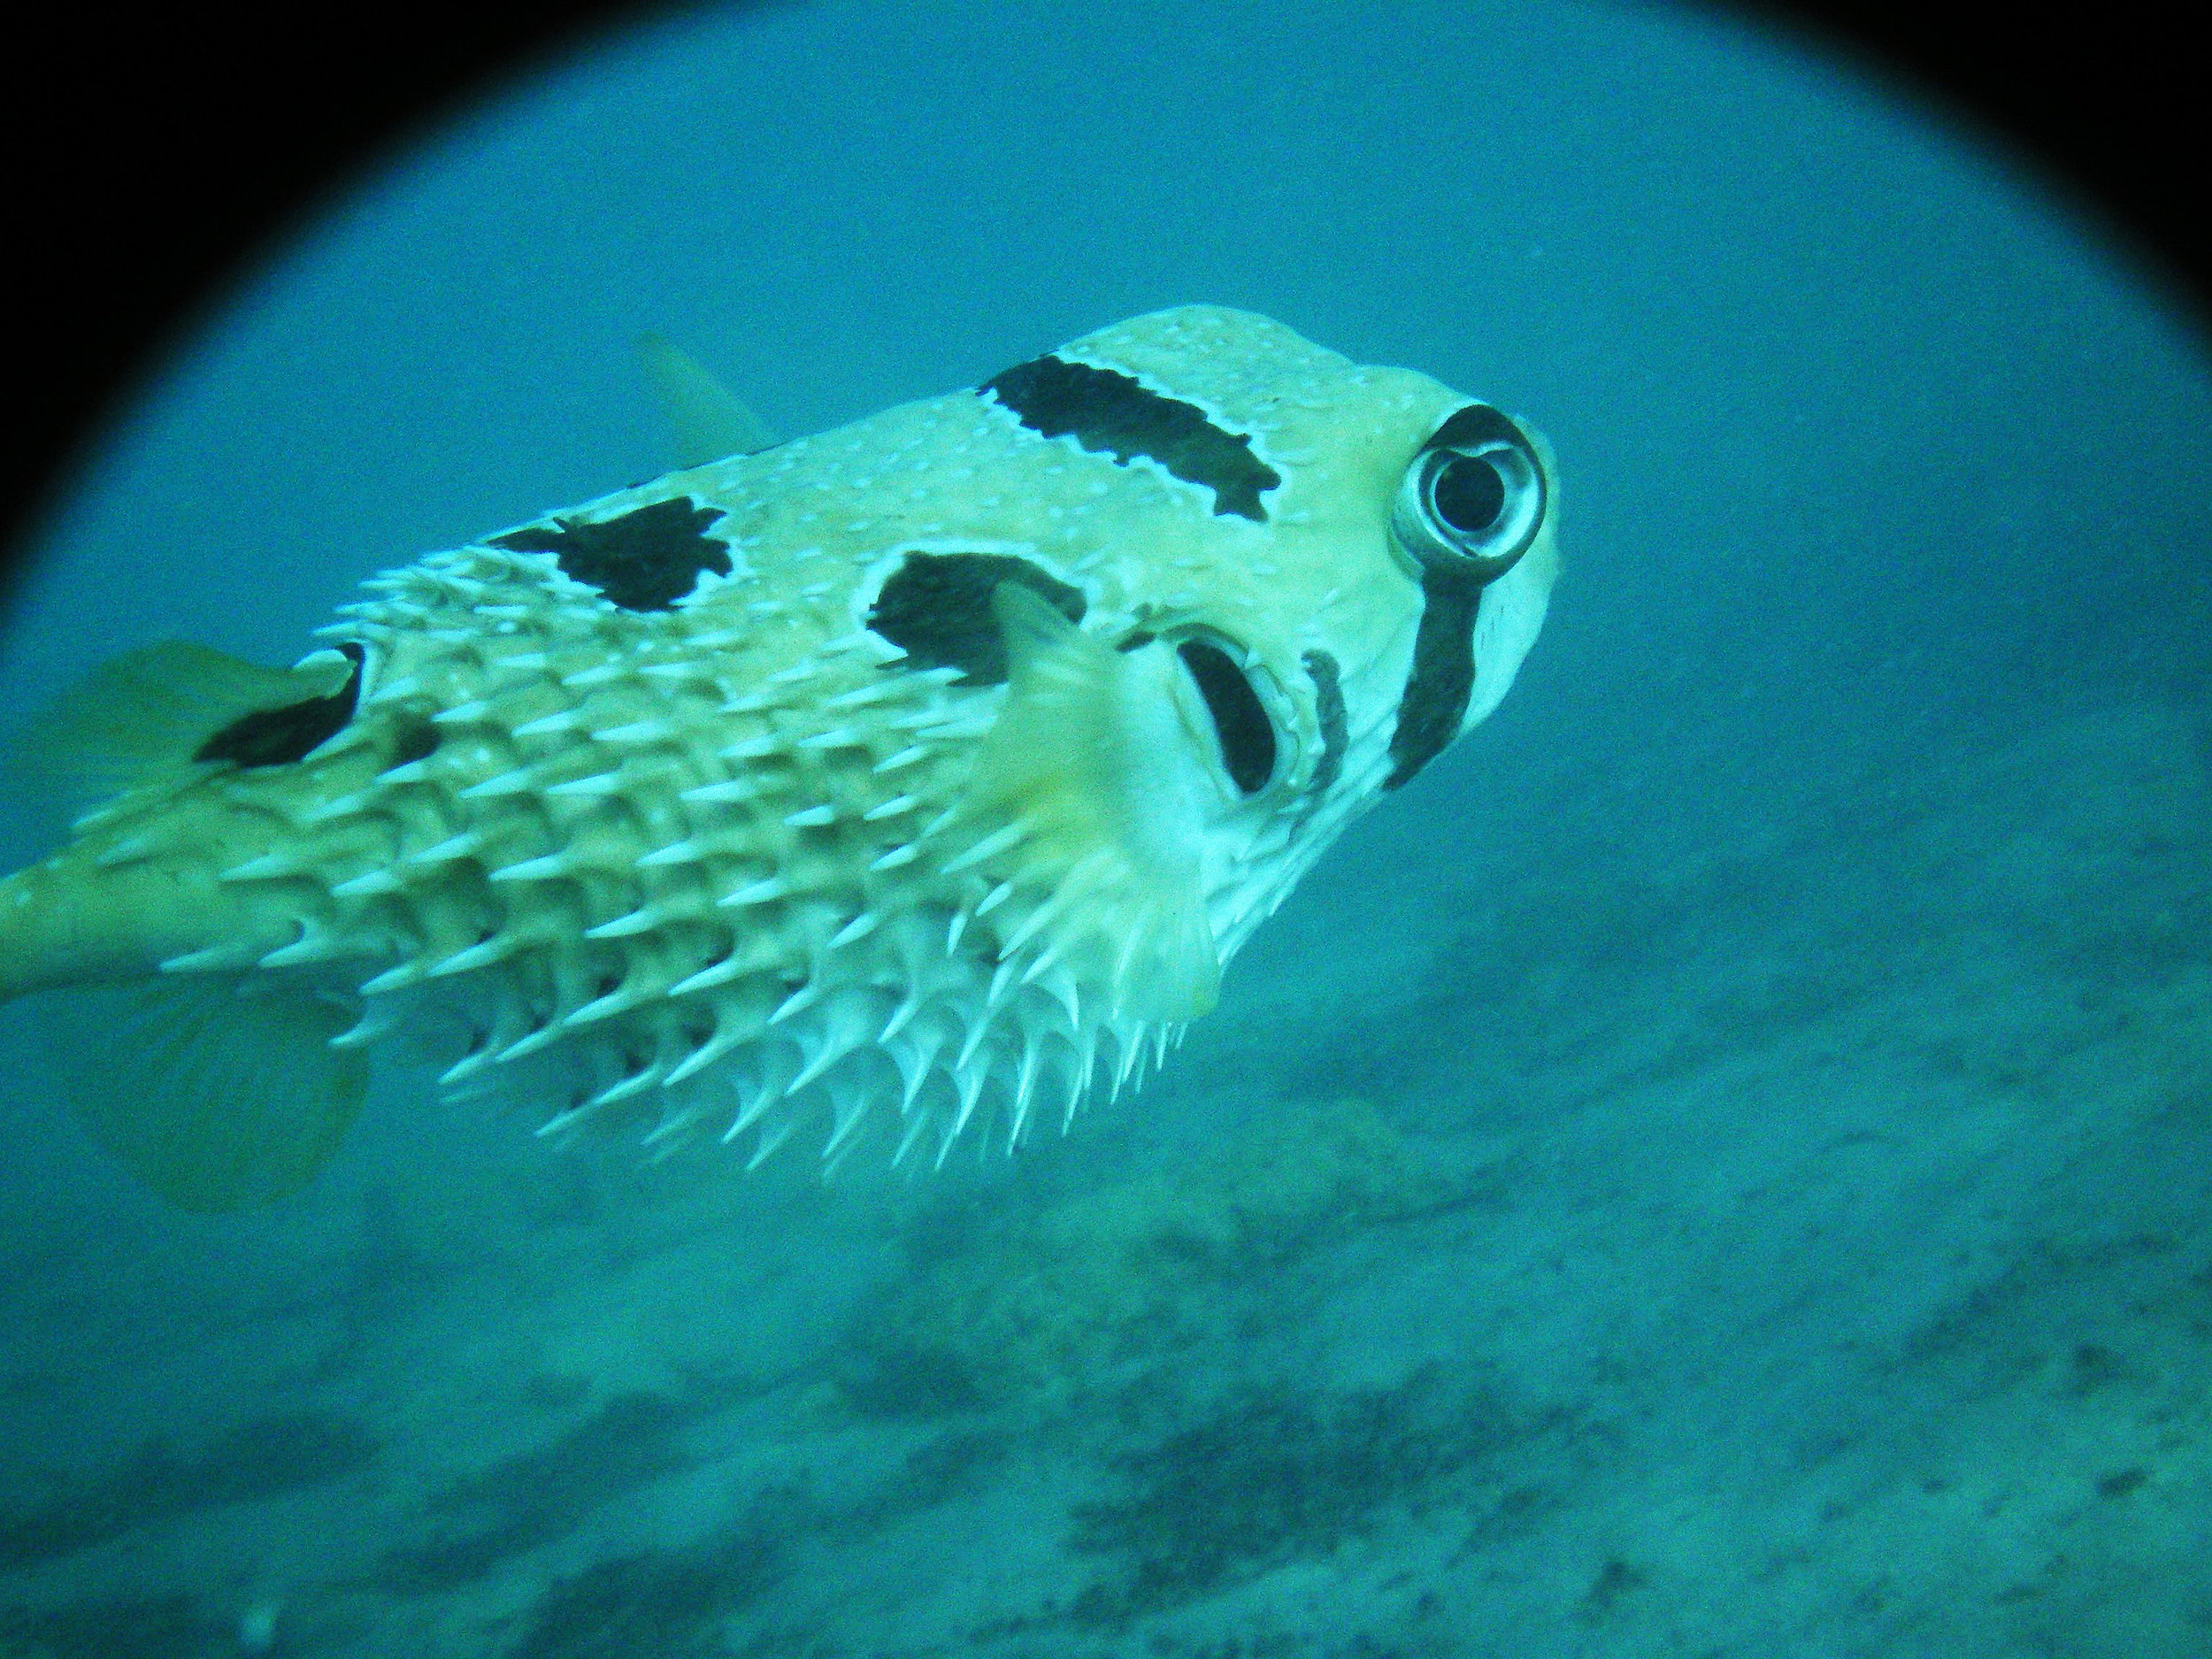 A spiky pufferfish swims by. Pentax Optio M30  (2008)